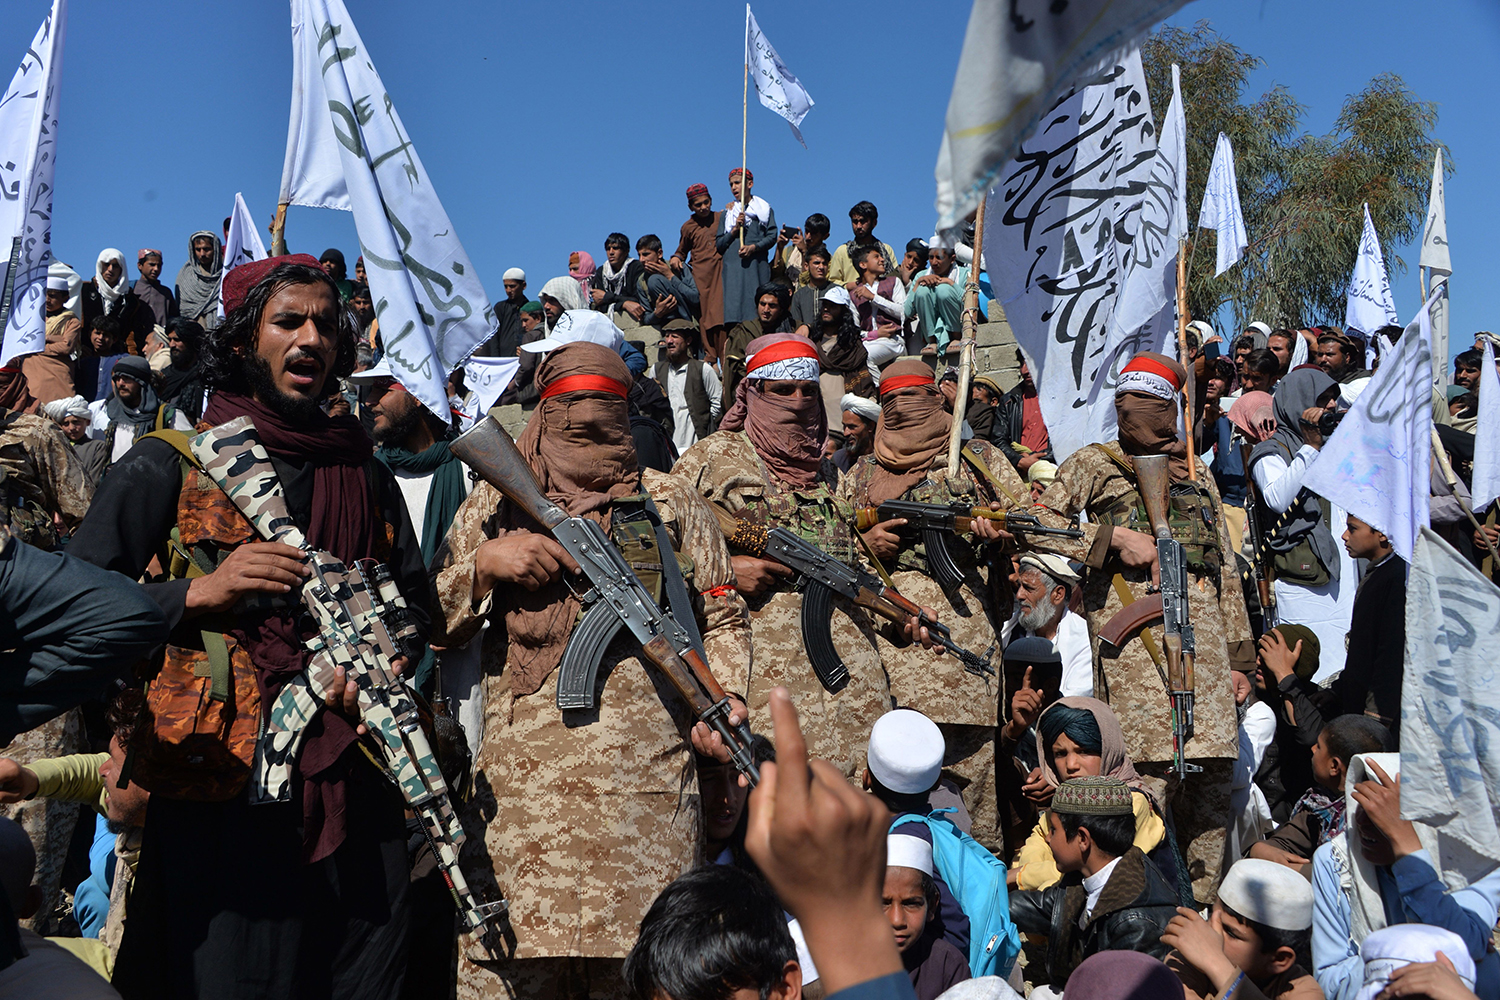 Afghan Taliban militants and villagers celebrate March 2 in the Alingar district of Laghman Province. The Taliban said they were resuming offensive operations against Afghan security forces, ending the partial truce that preceded the signing of a deal between the insurgents and Washington. NOORULLAH SHIRZADA/AFP via Getty Images